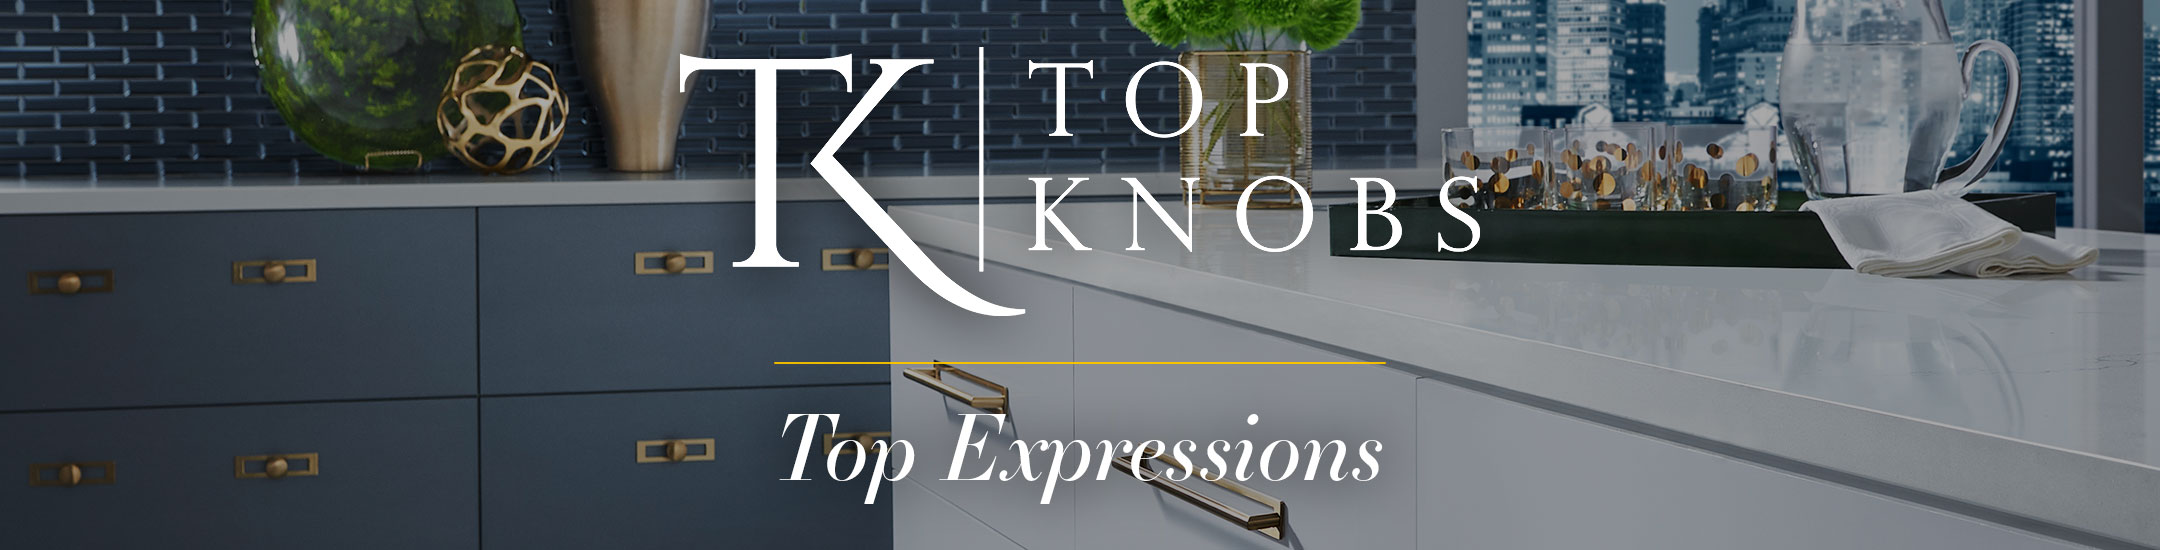 Top Knobs - Top Expressions